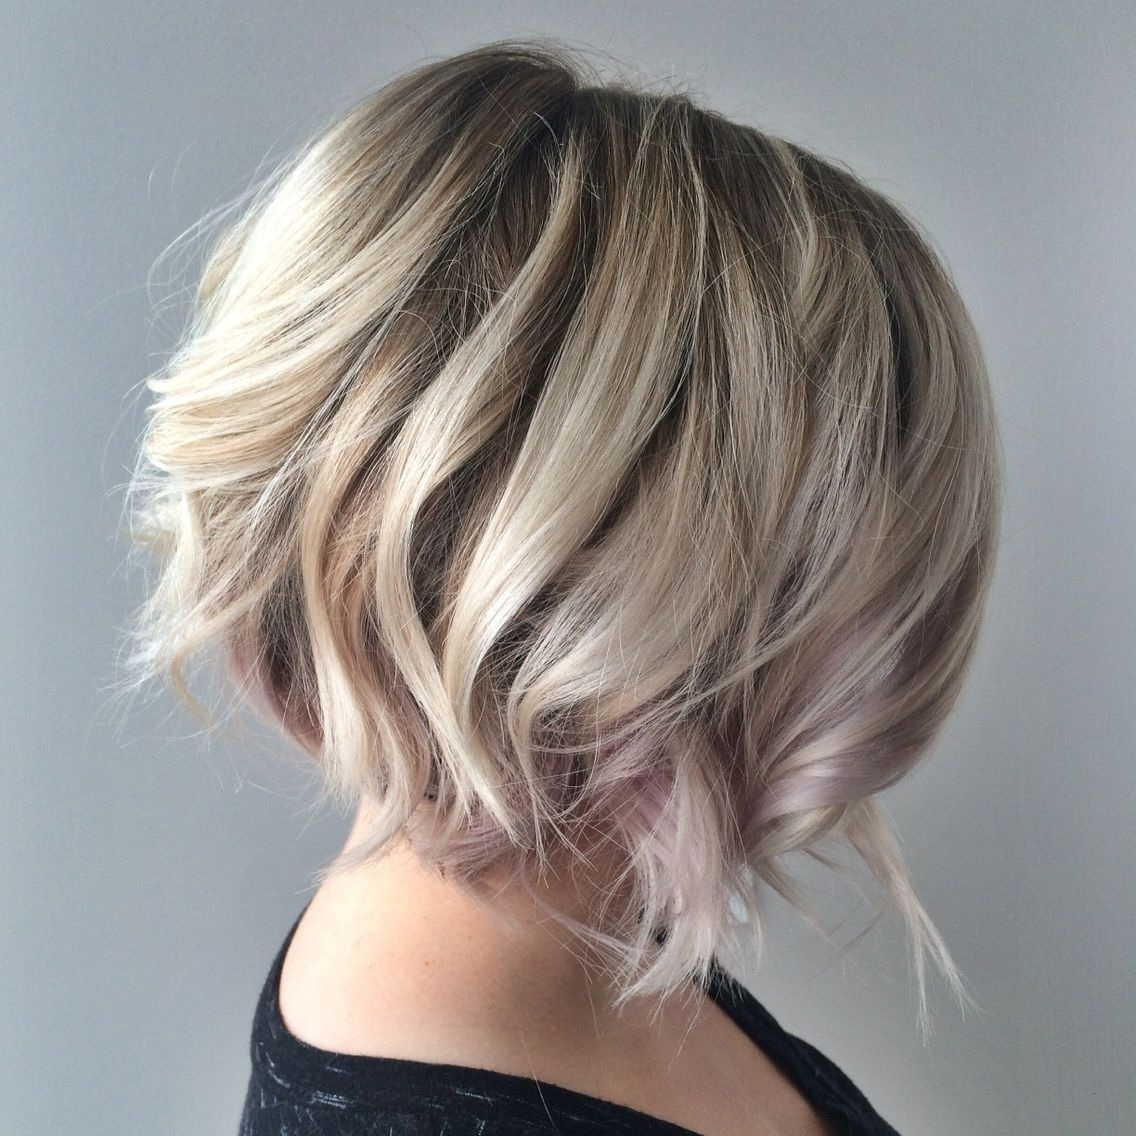 100 Mind Blowing Short Hairstyles For Fine Hair New Blonde Balayage Within Famous Curly Caramel Blonde Bob Hairstyles (View 1 of 20)